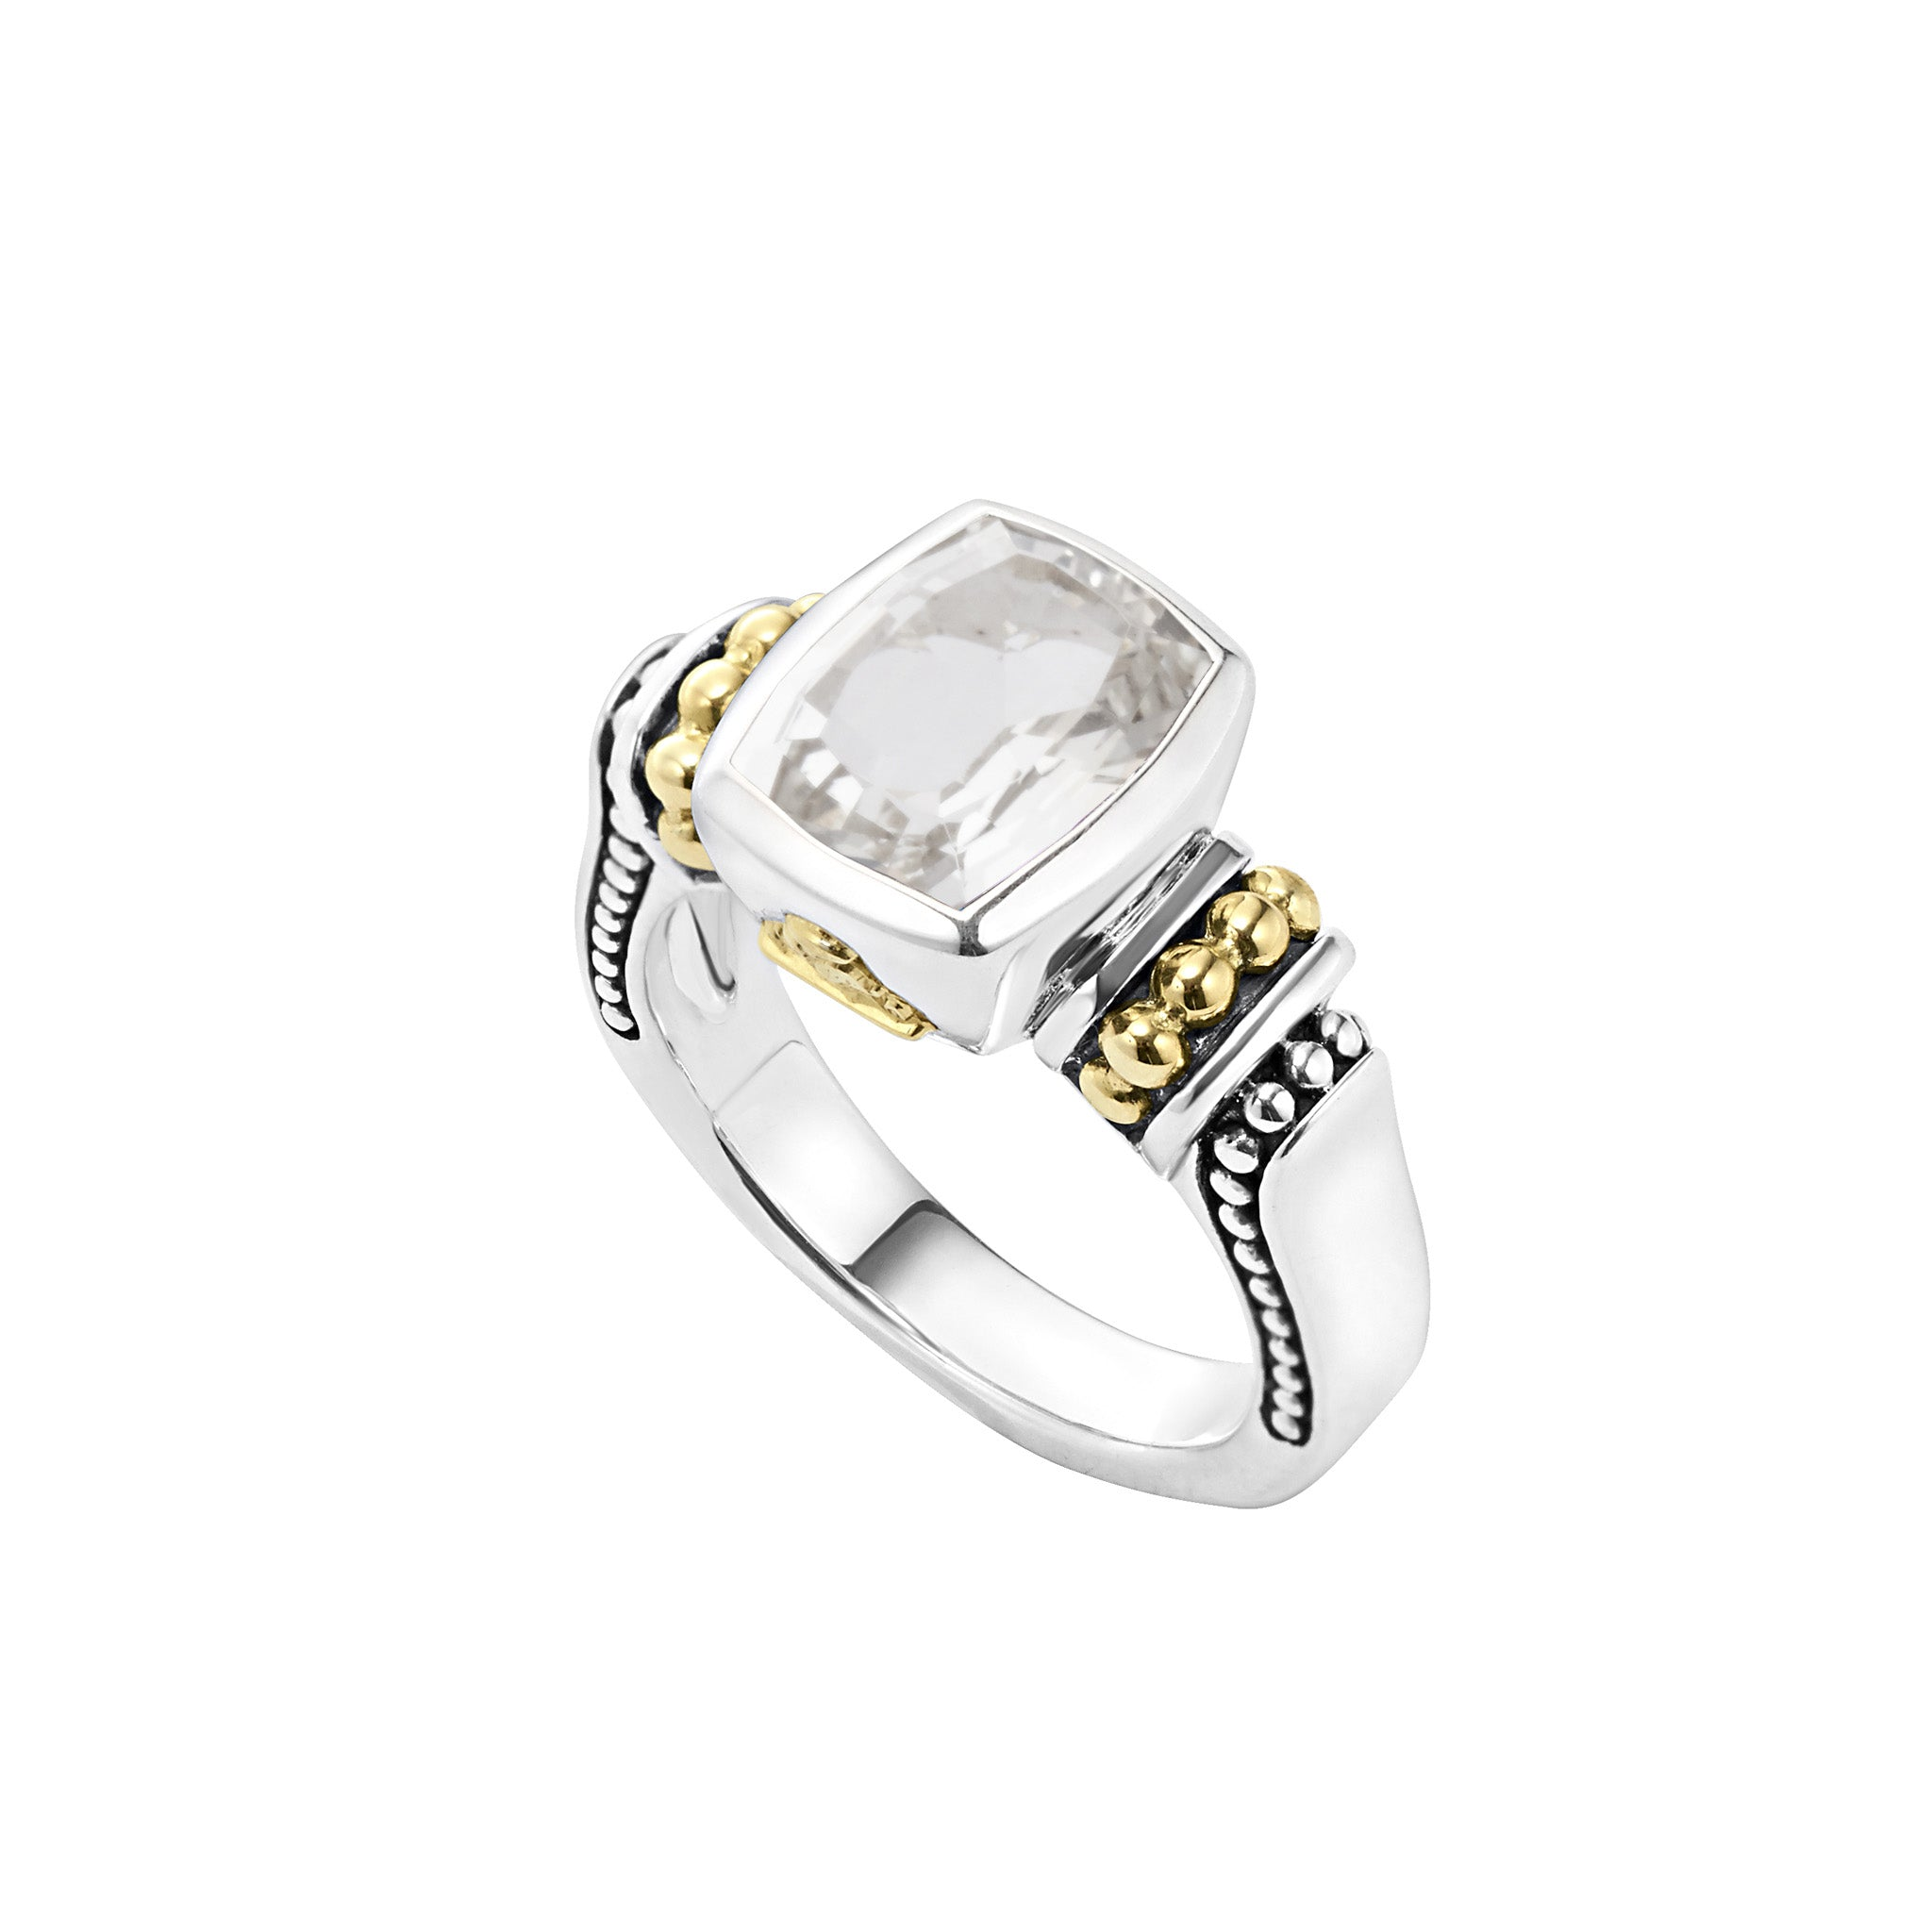 Lagos 'Caviar Color' White Topaz Ring